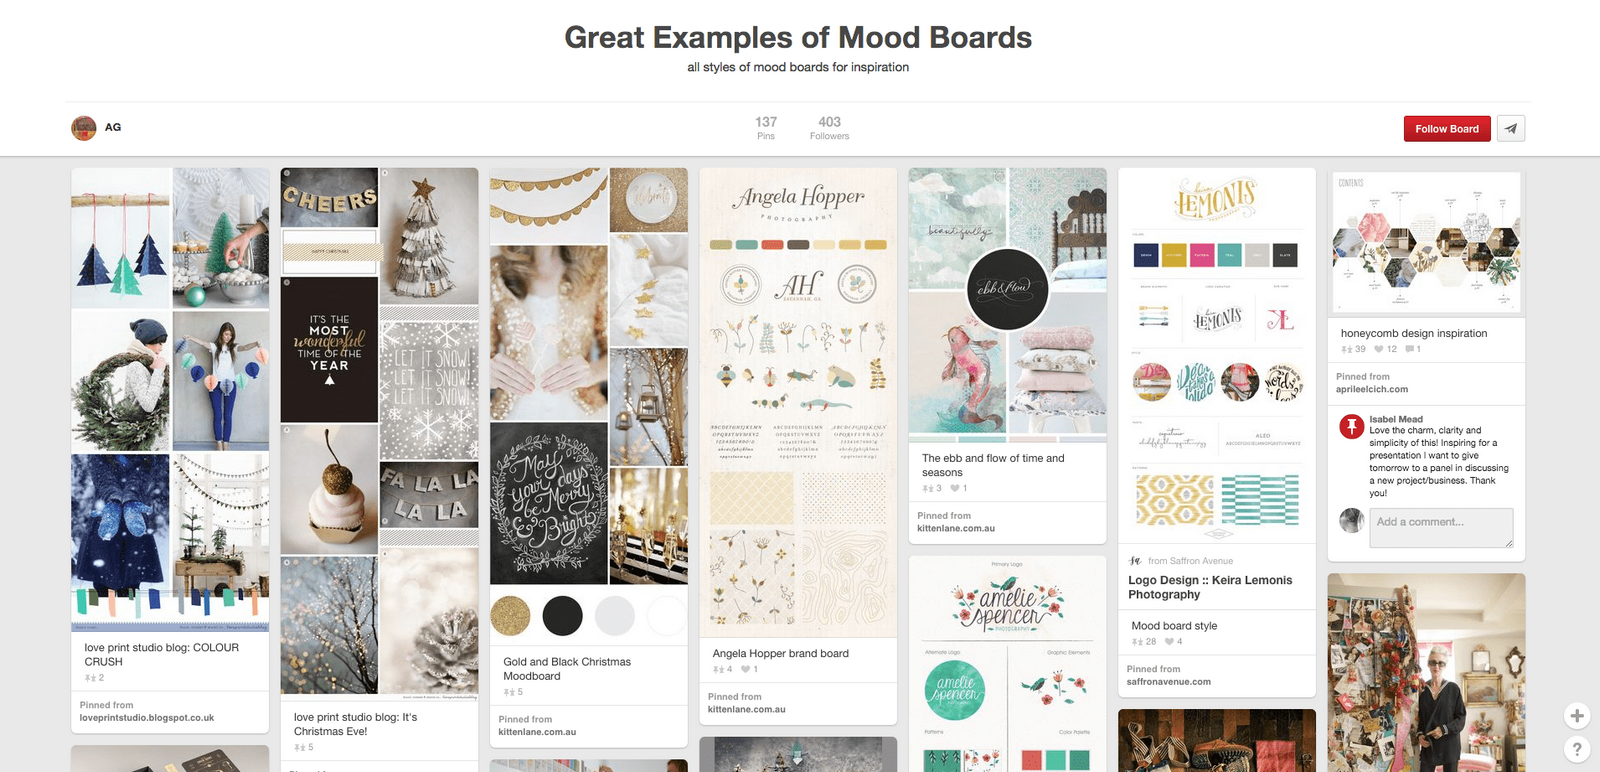 10 things to remember while designing a mood board - Sheet9